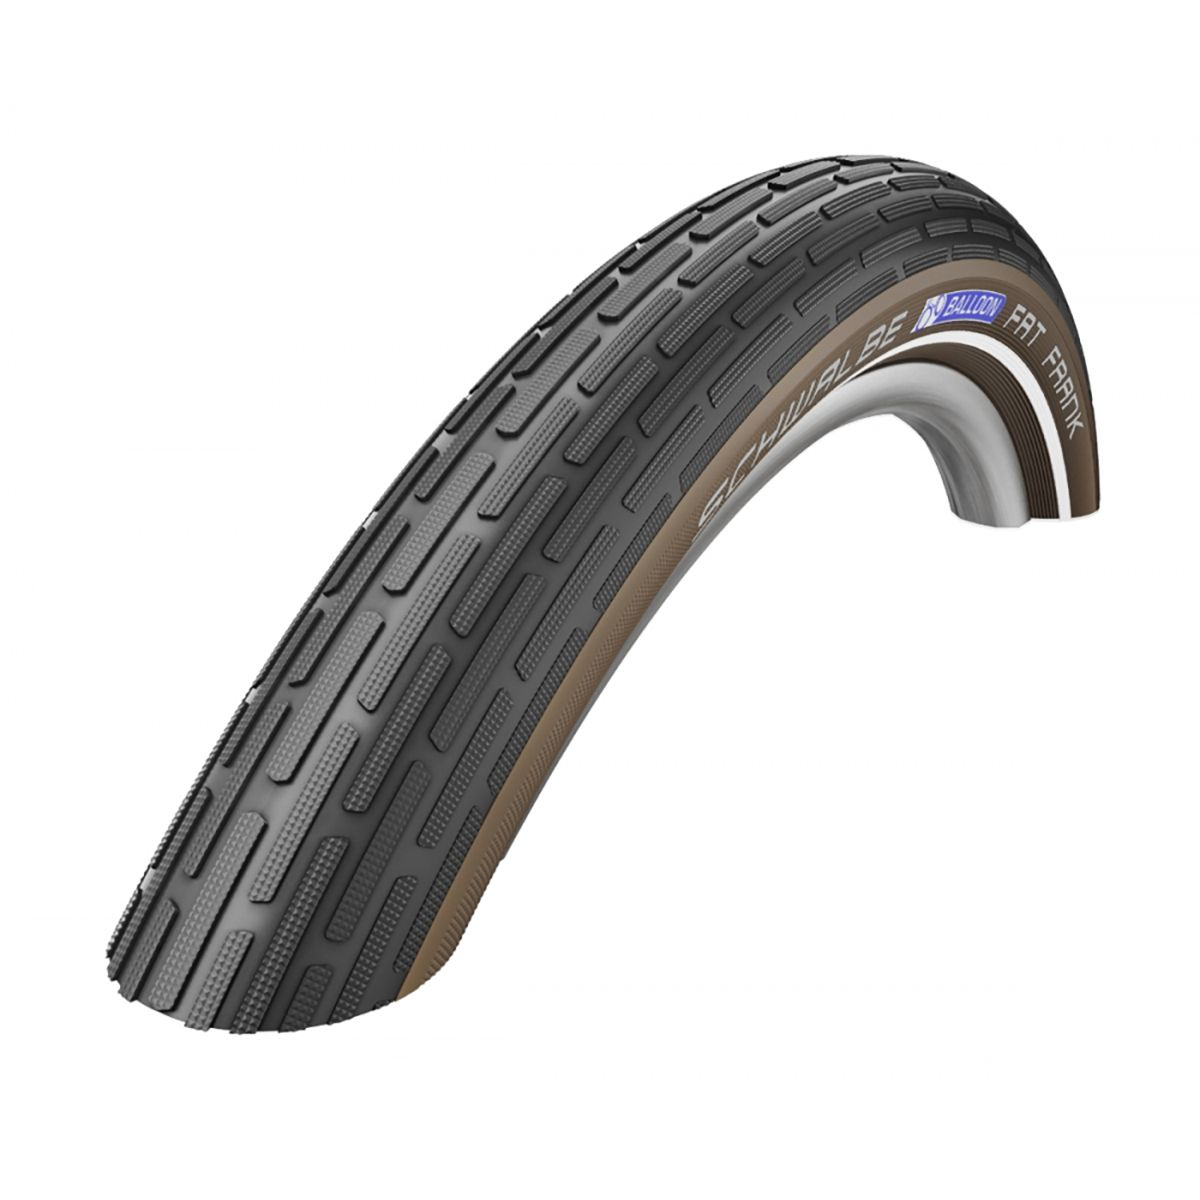 Schwalbe Fat Frank clincher tyre Urban, Touring, City | City